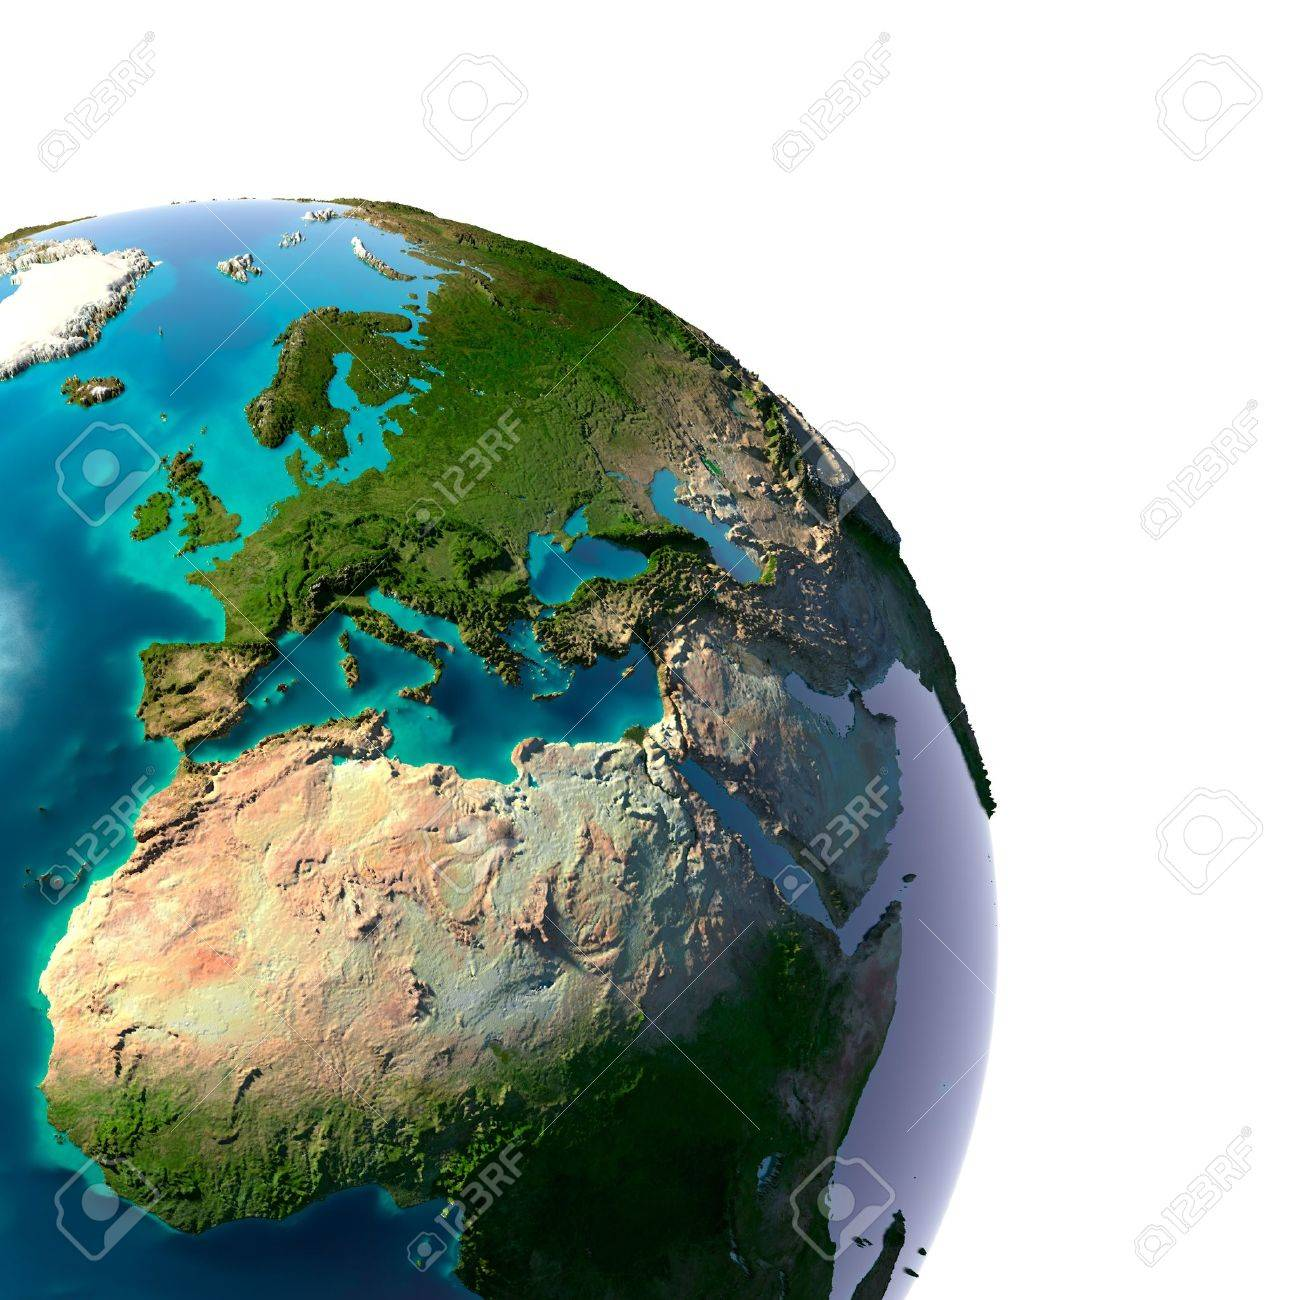 Earth with translucent water in the oceans and the detailed topography of the continents. A fragment of the Earth, with Europe and Africa. Isolated on white Stock Photo - 12651901